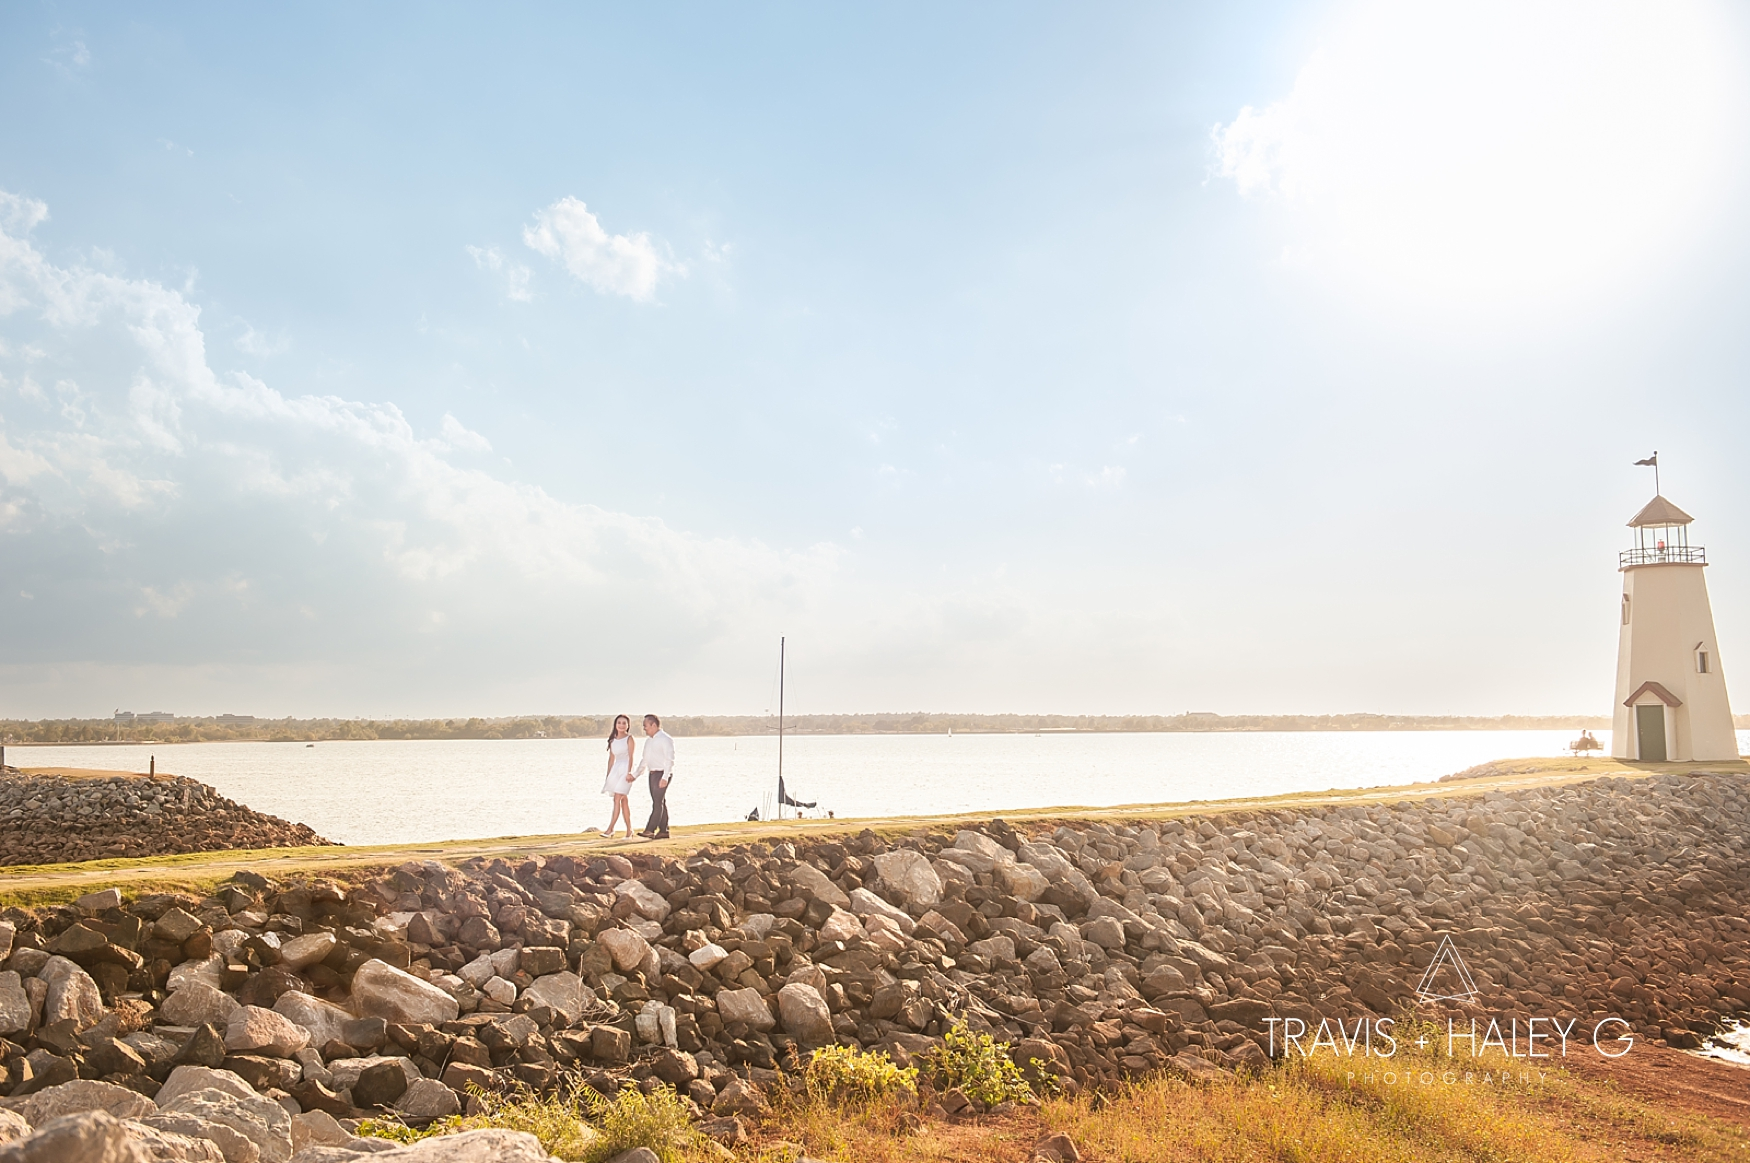 Lake Hefner Lighthouse Modern Oklahoma City Engagement Photography Travis and Haley G